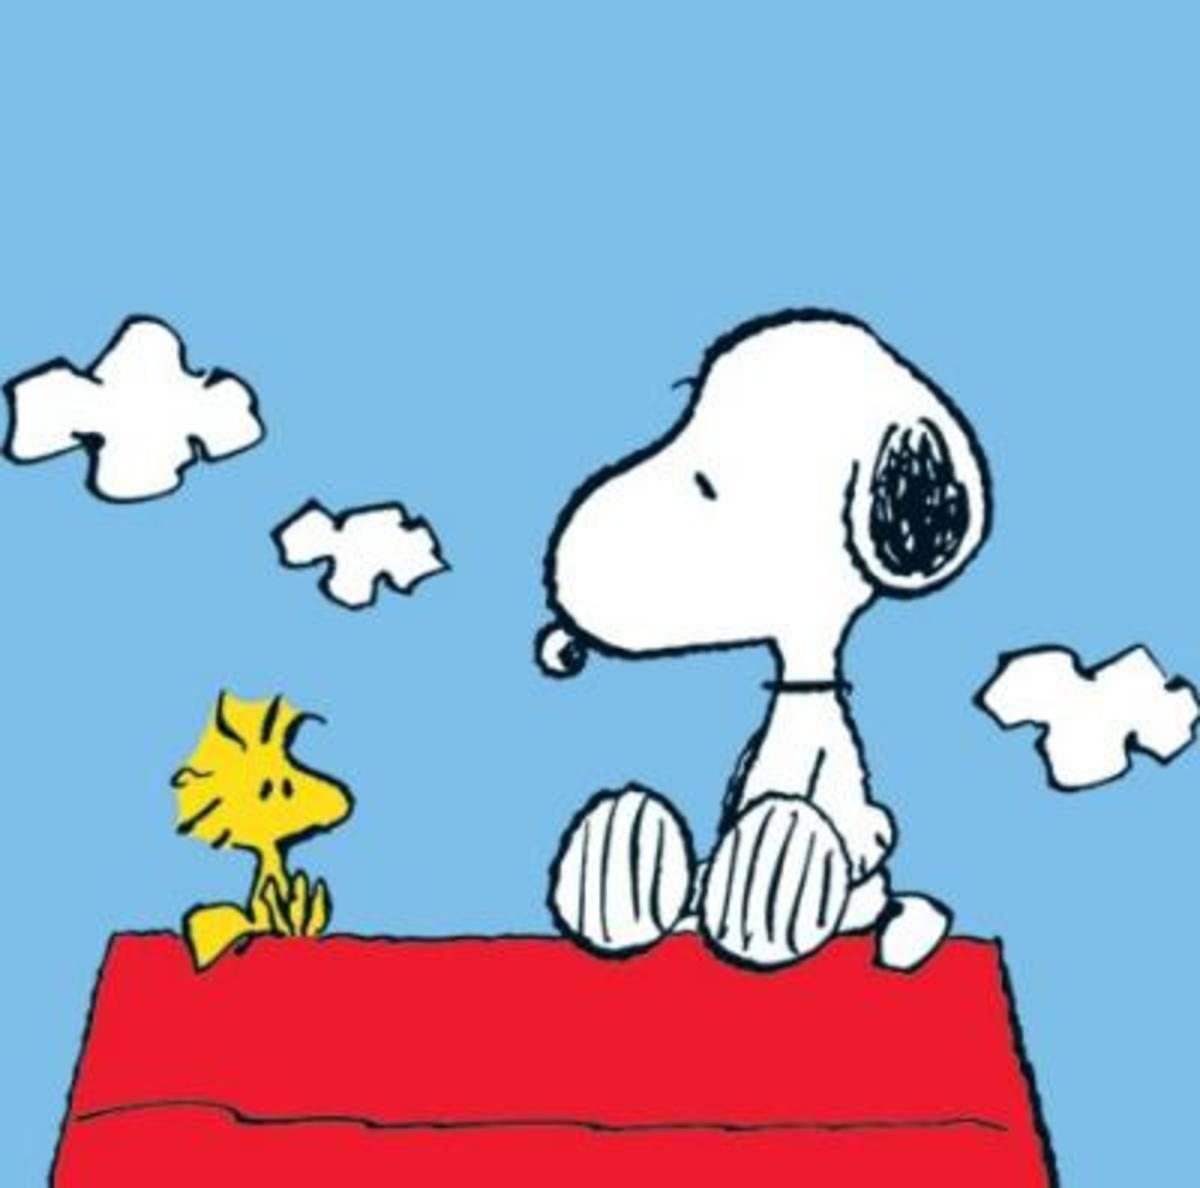 Snoopy and Woodstock from Peanuts